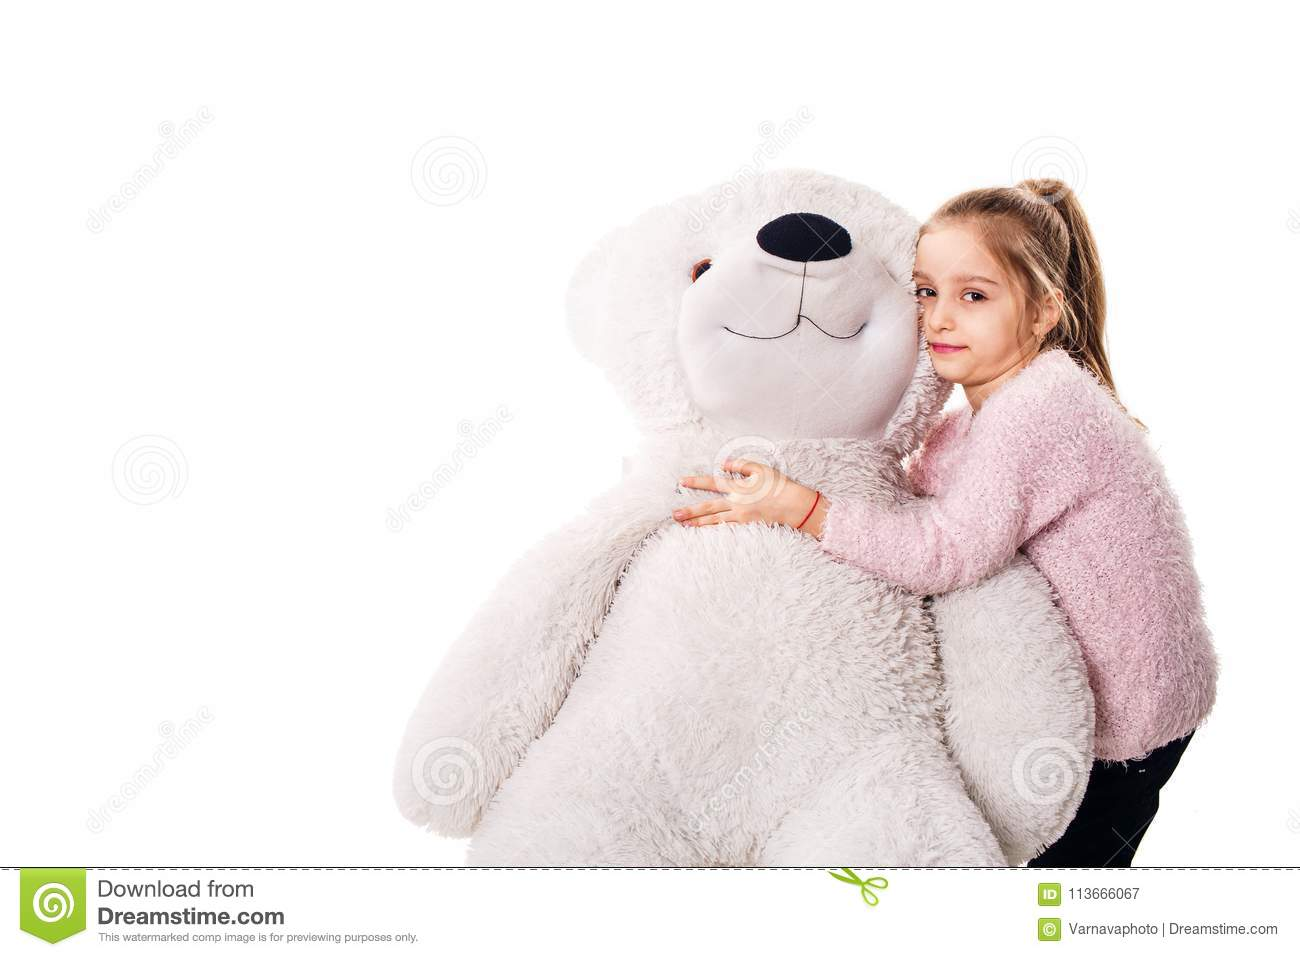 Little Girl And A Big White Teddy Bear. Stock Image ...Little Girl With Teddy Bear Black And White